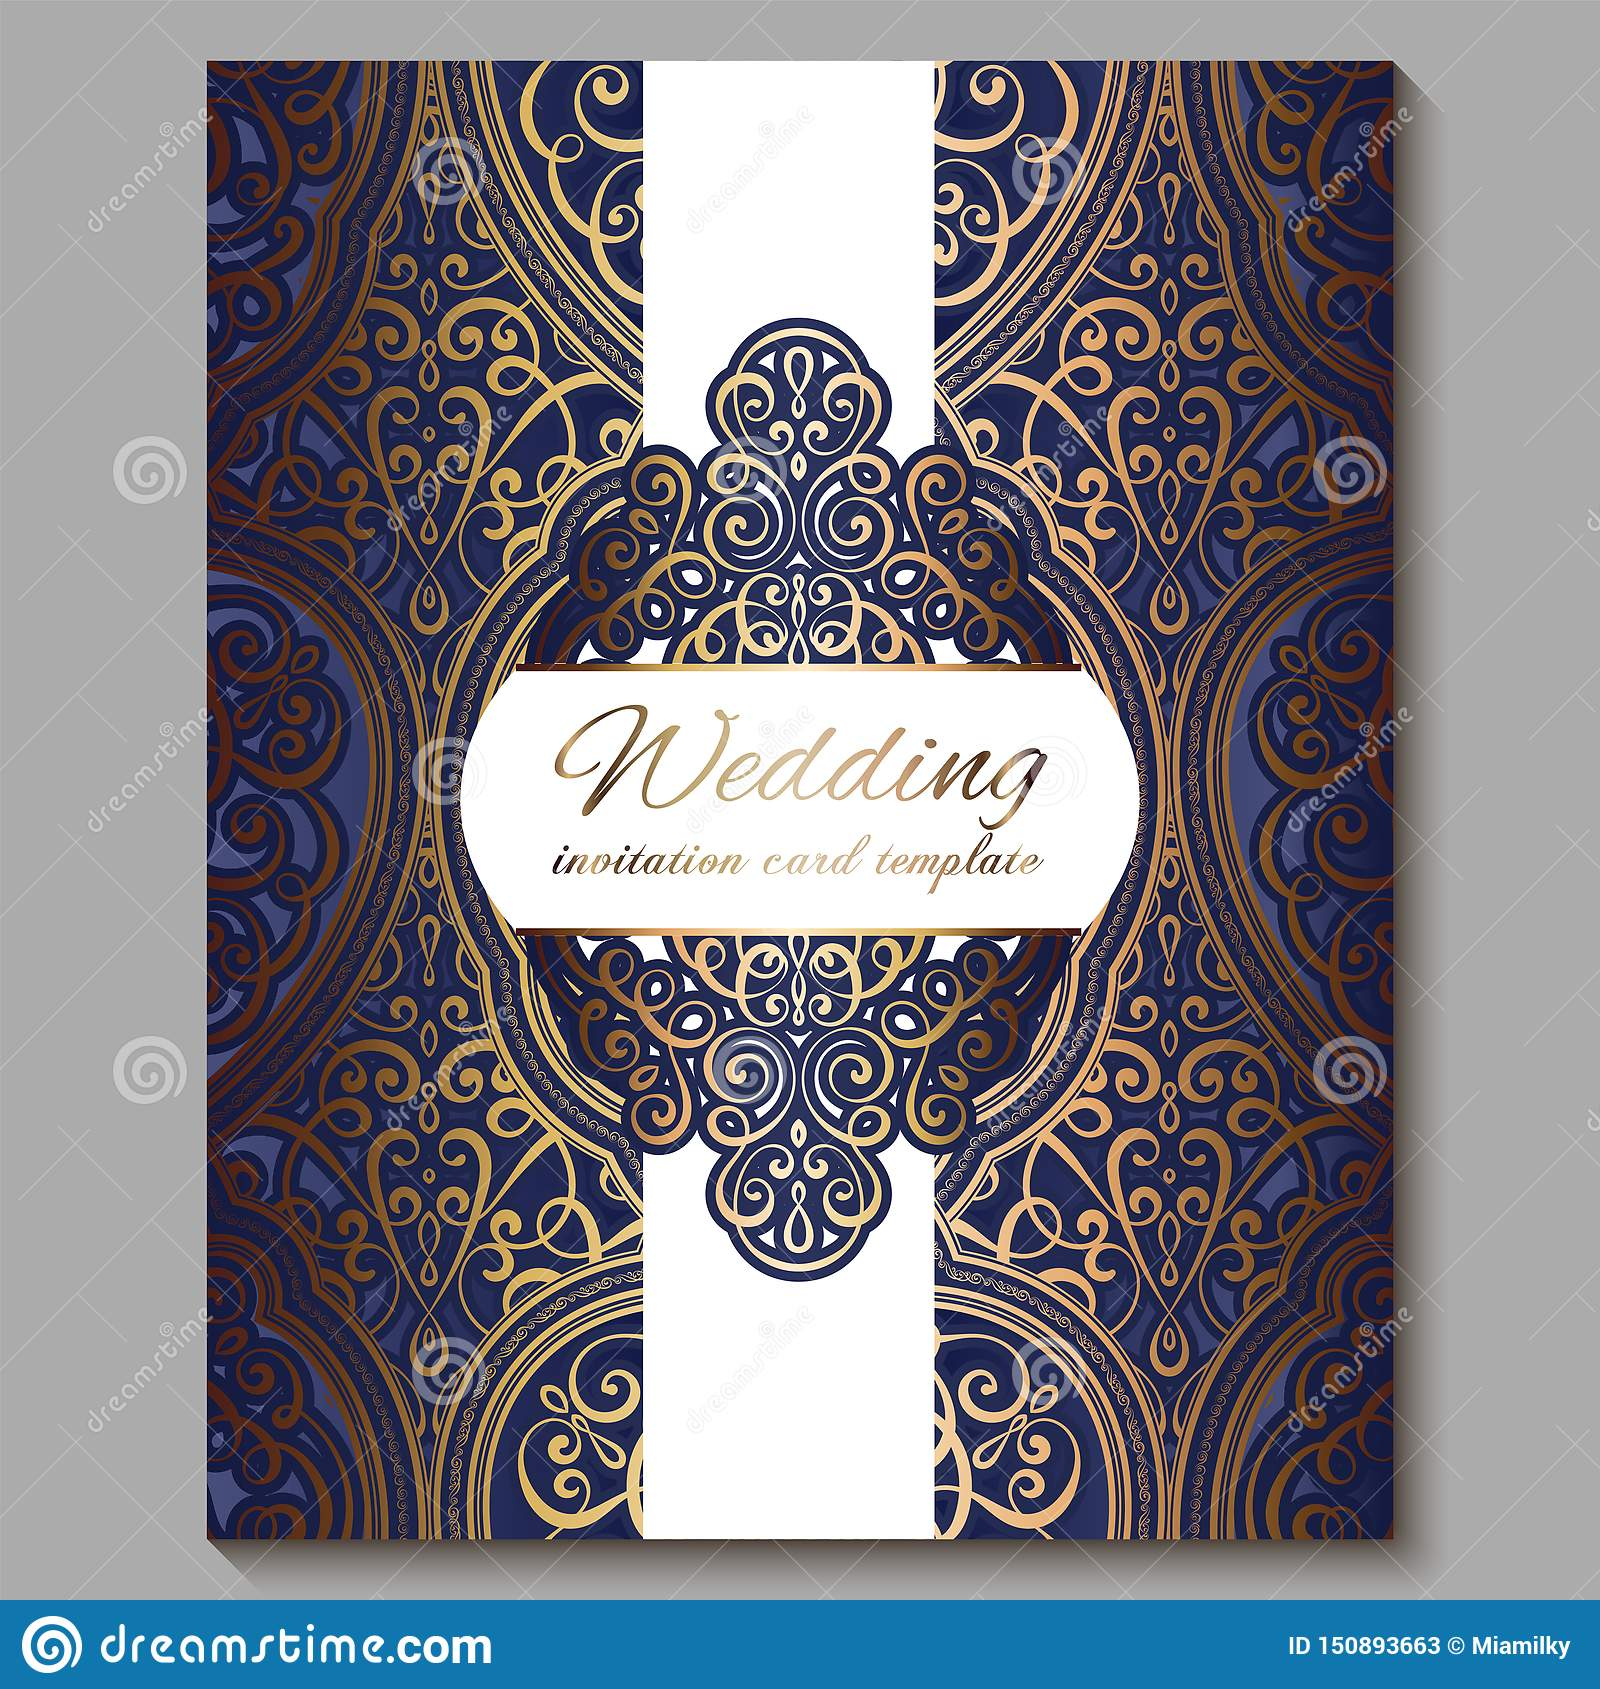 Wedding Invitation Card With Gold Shiny Eastern And Baroque Rich Foliage Royal Blue Ornate Islamic Background For Your Design Stock Illustration Illustration Of Classic India 150893663